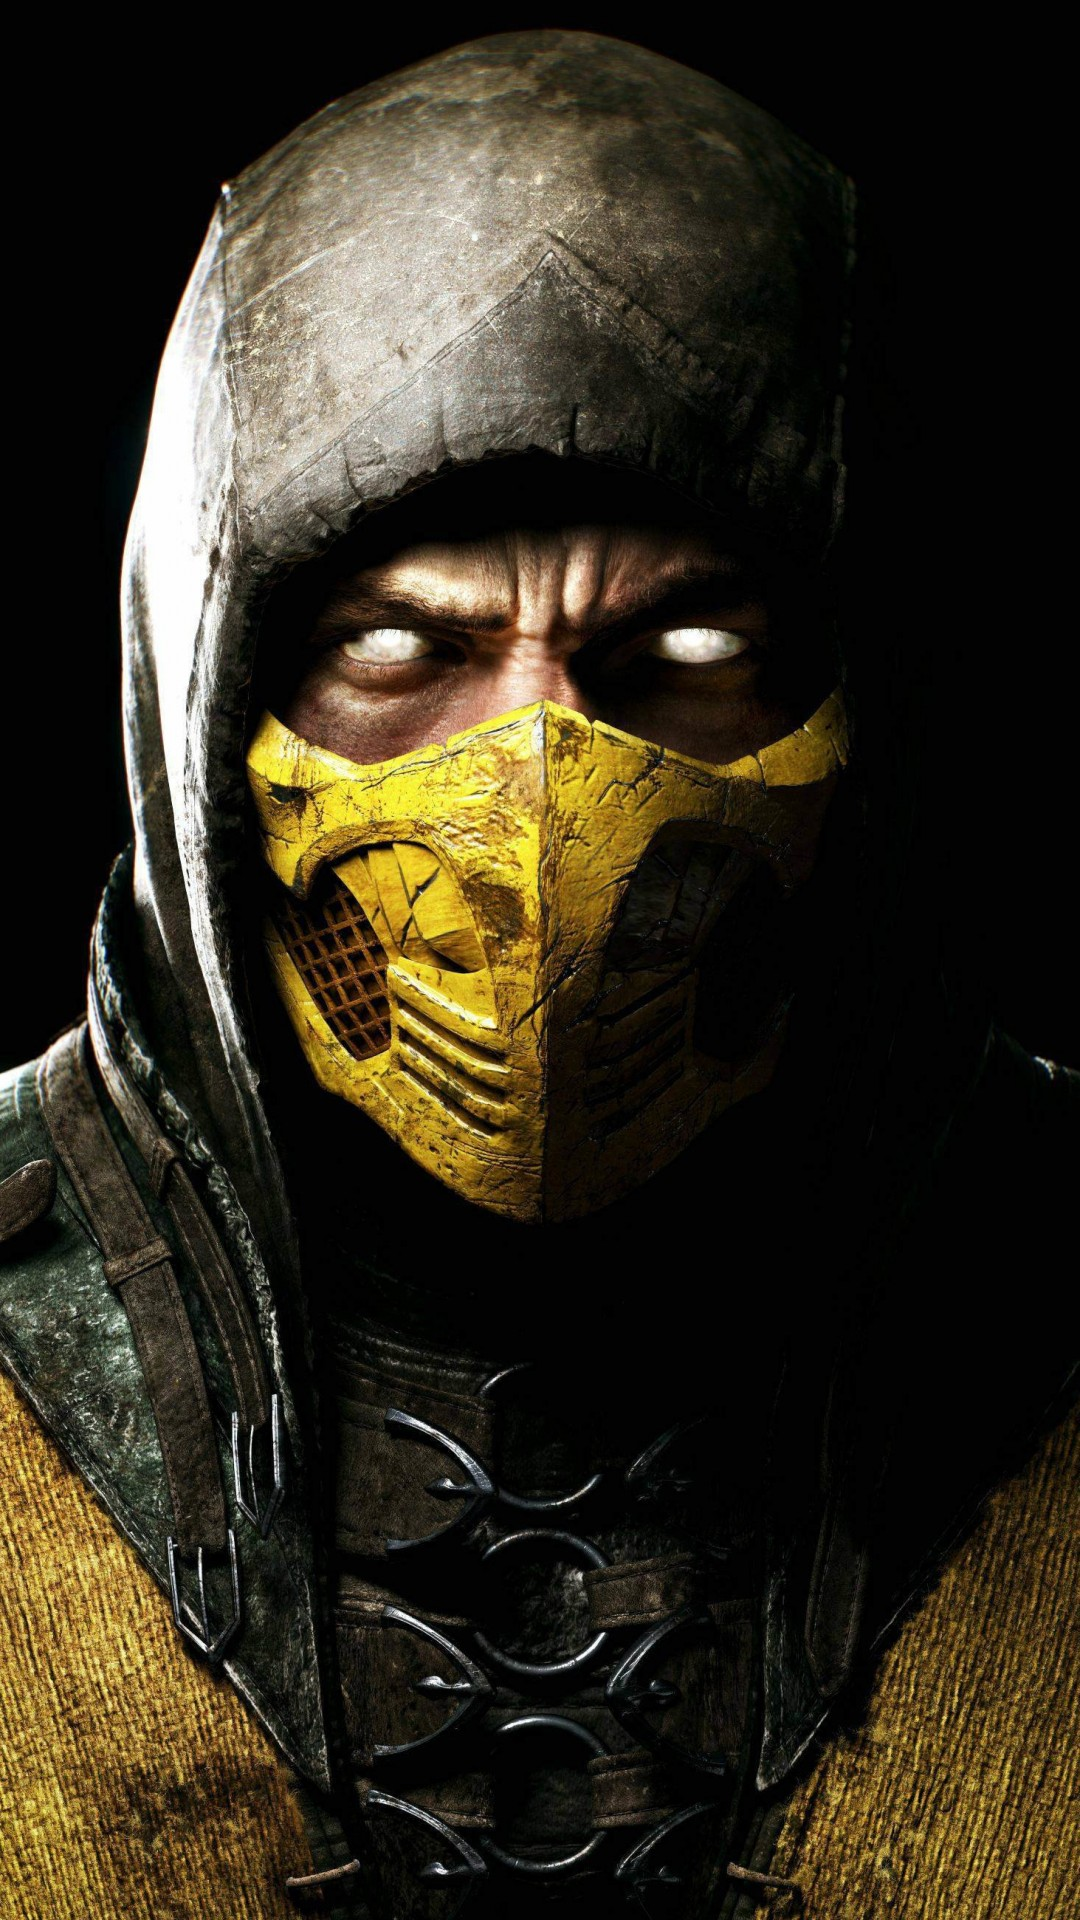 Scorpion Mortal Kombat X Wallpaper for SAMSUNG Galaxy S4